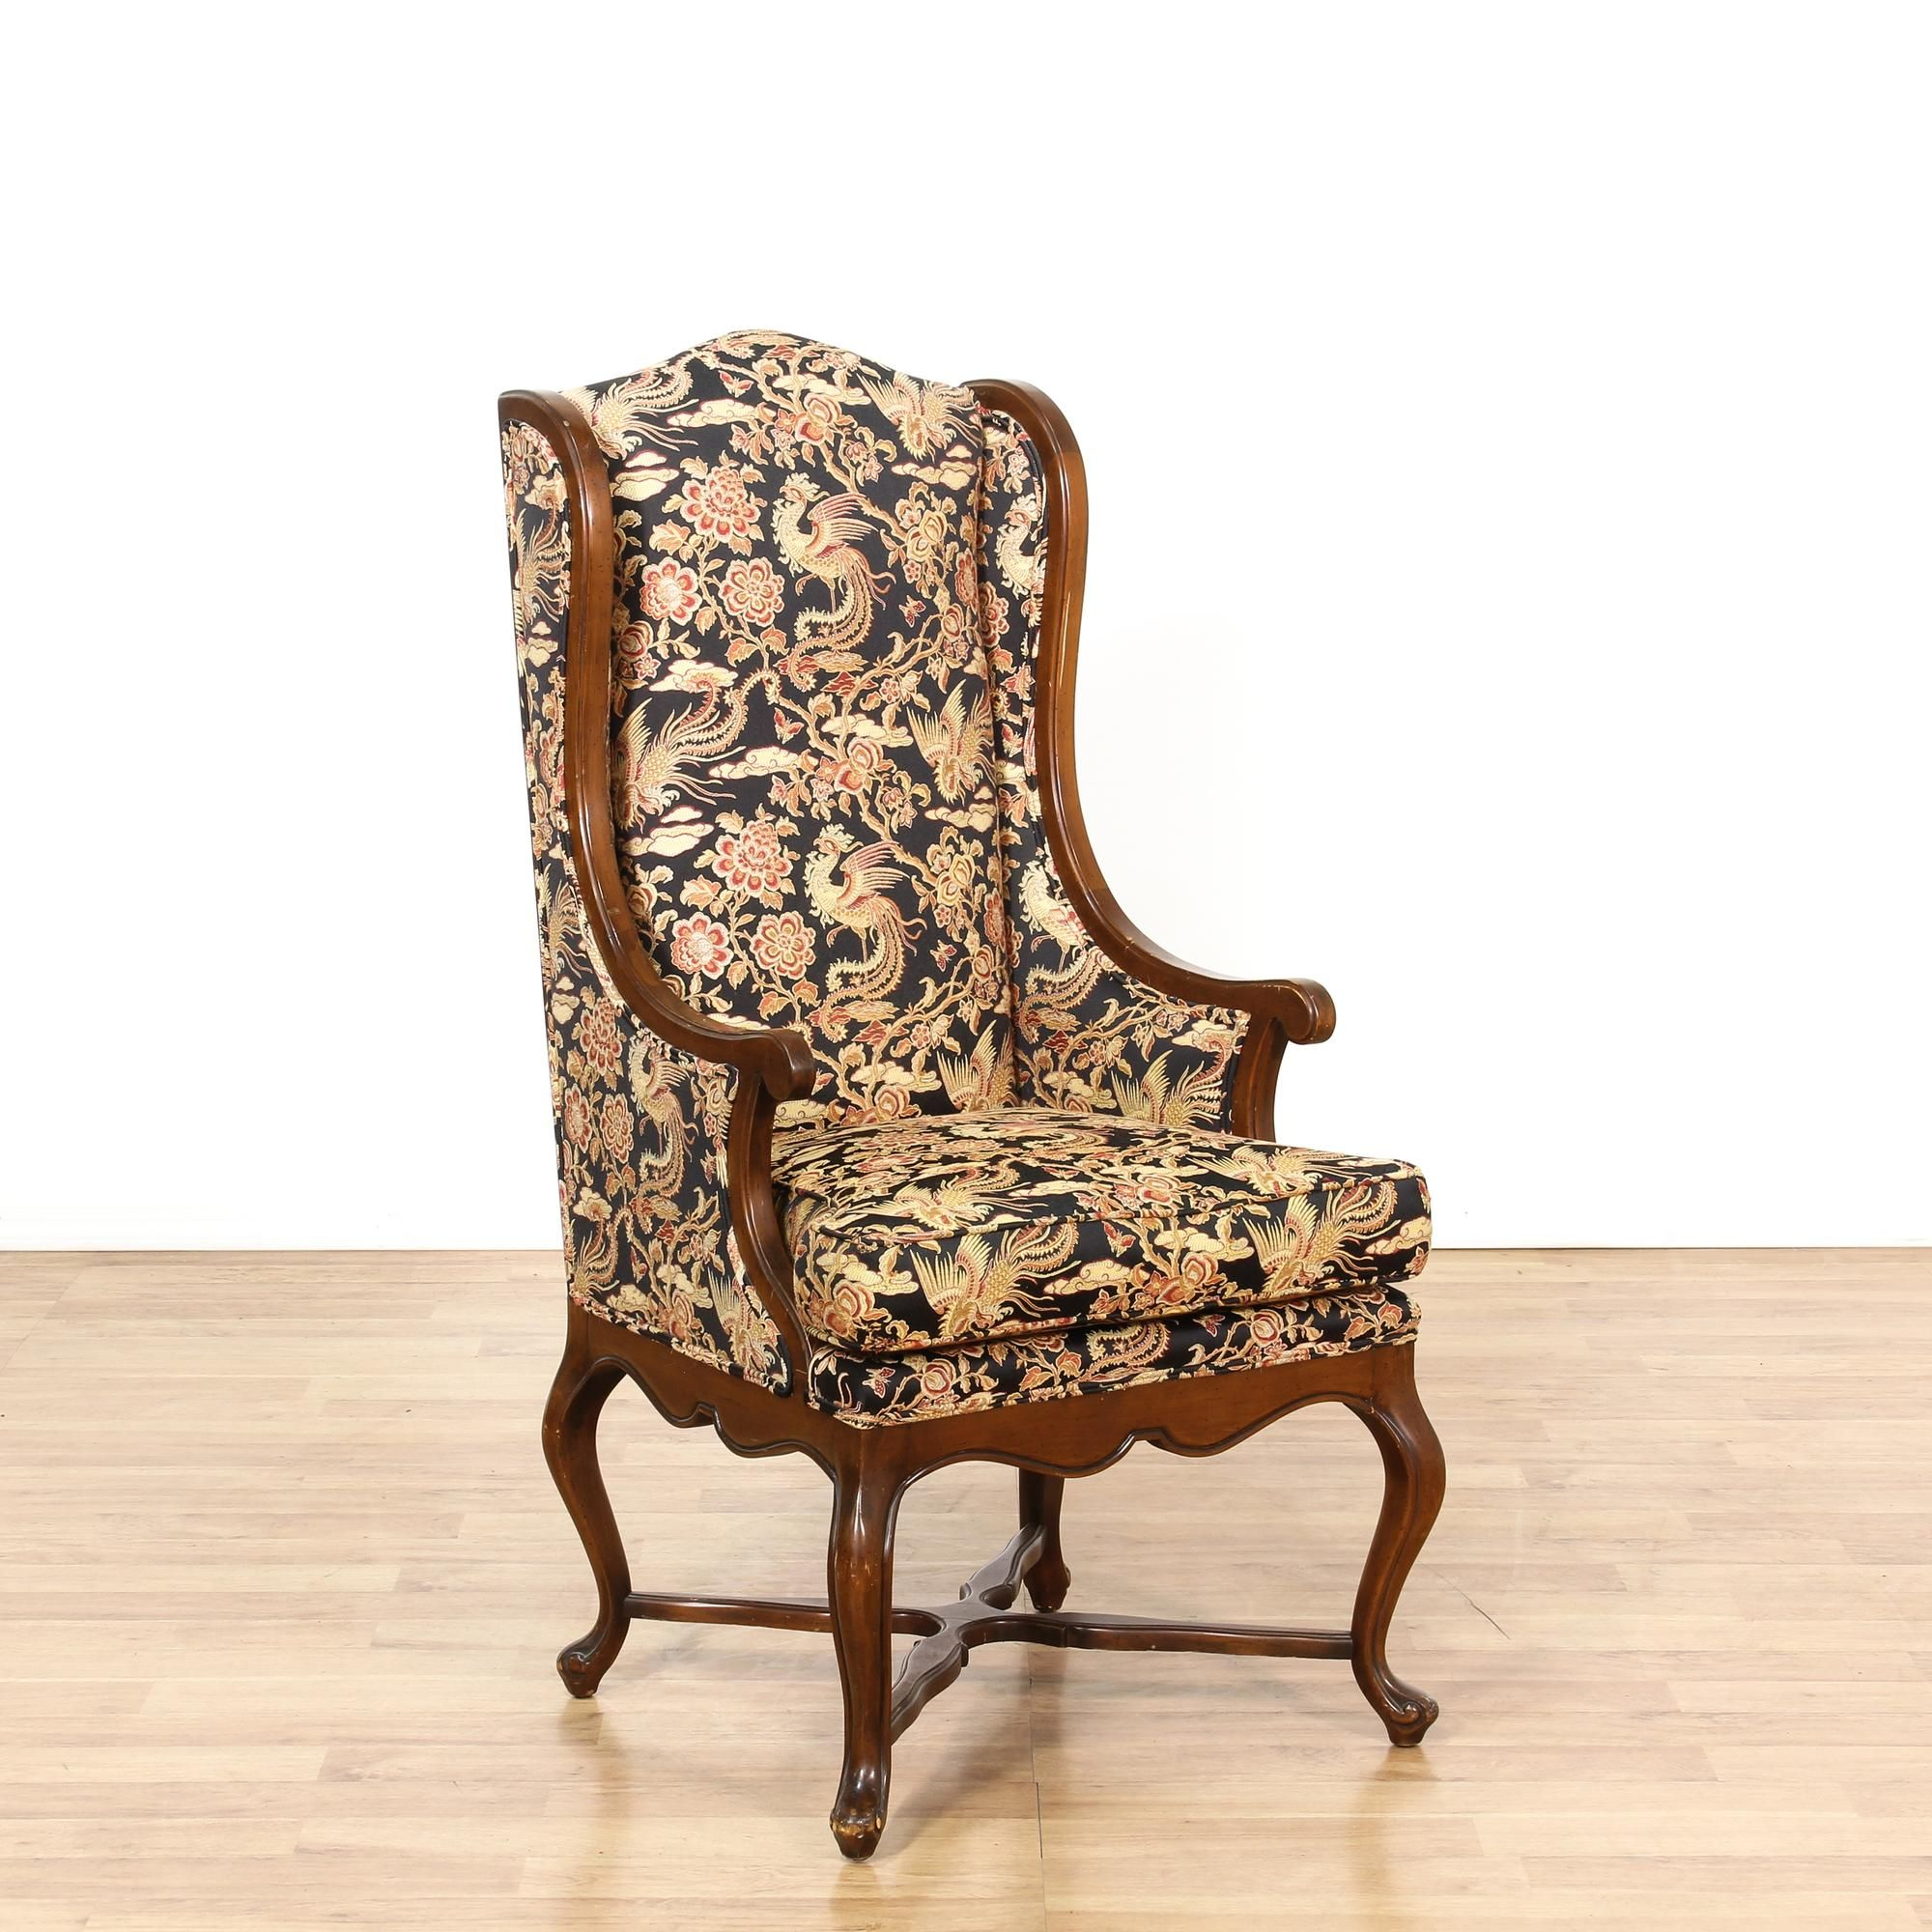 This Tall Wingback Armchair Is Upholstered In A Floral Phoenix Print With  Black, Gold And Red Accents. This Accent Chair Has A Tall Wing Back, Carved  Solid ...